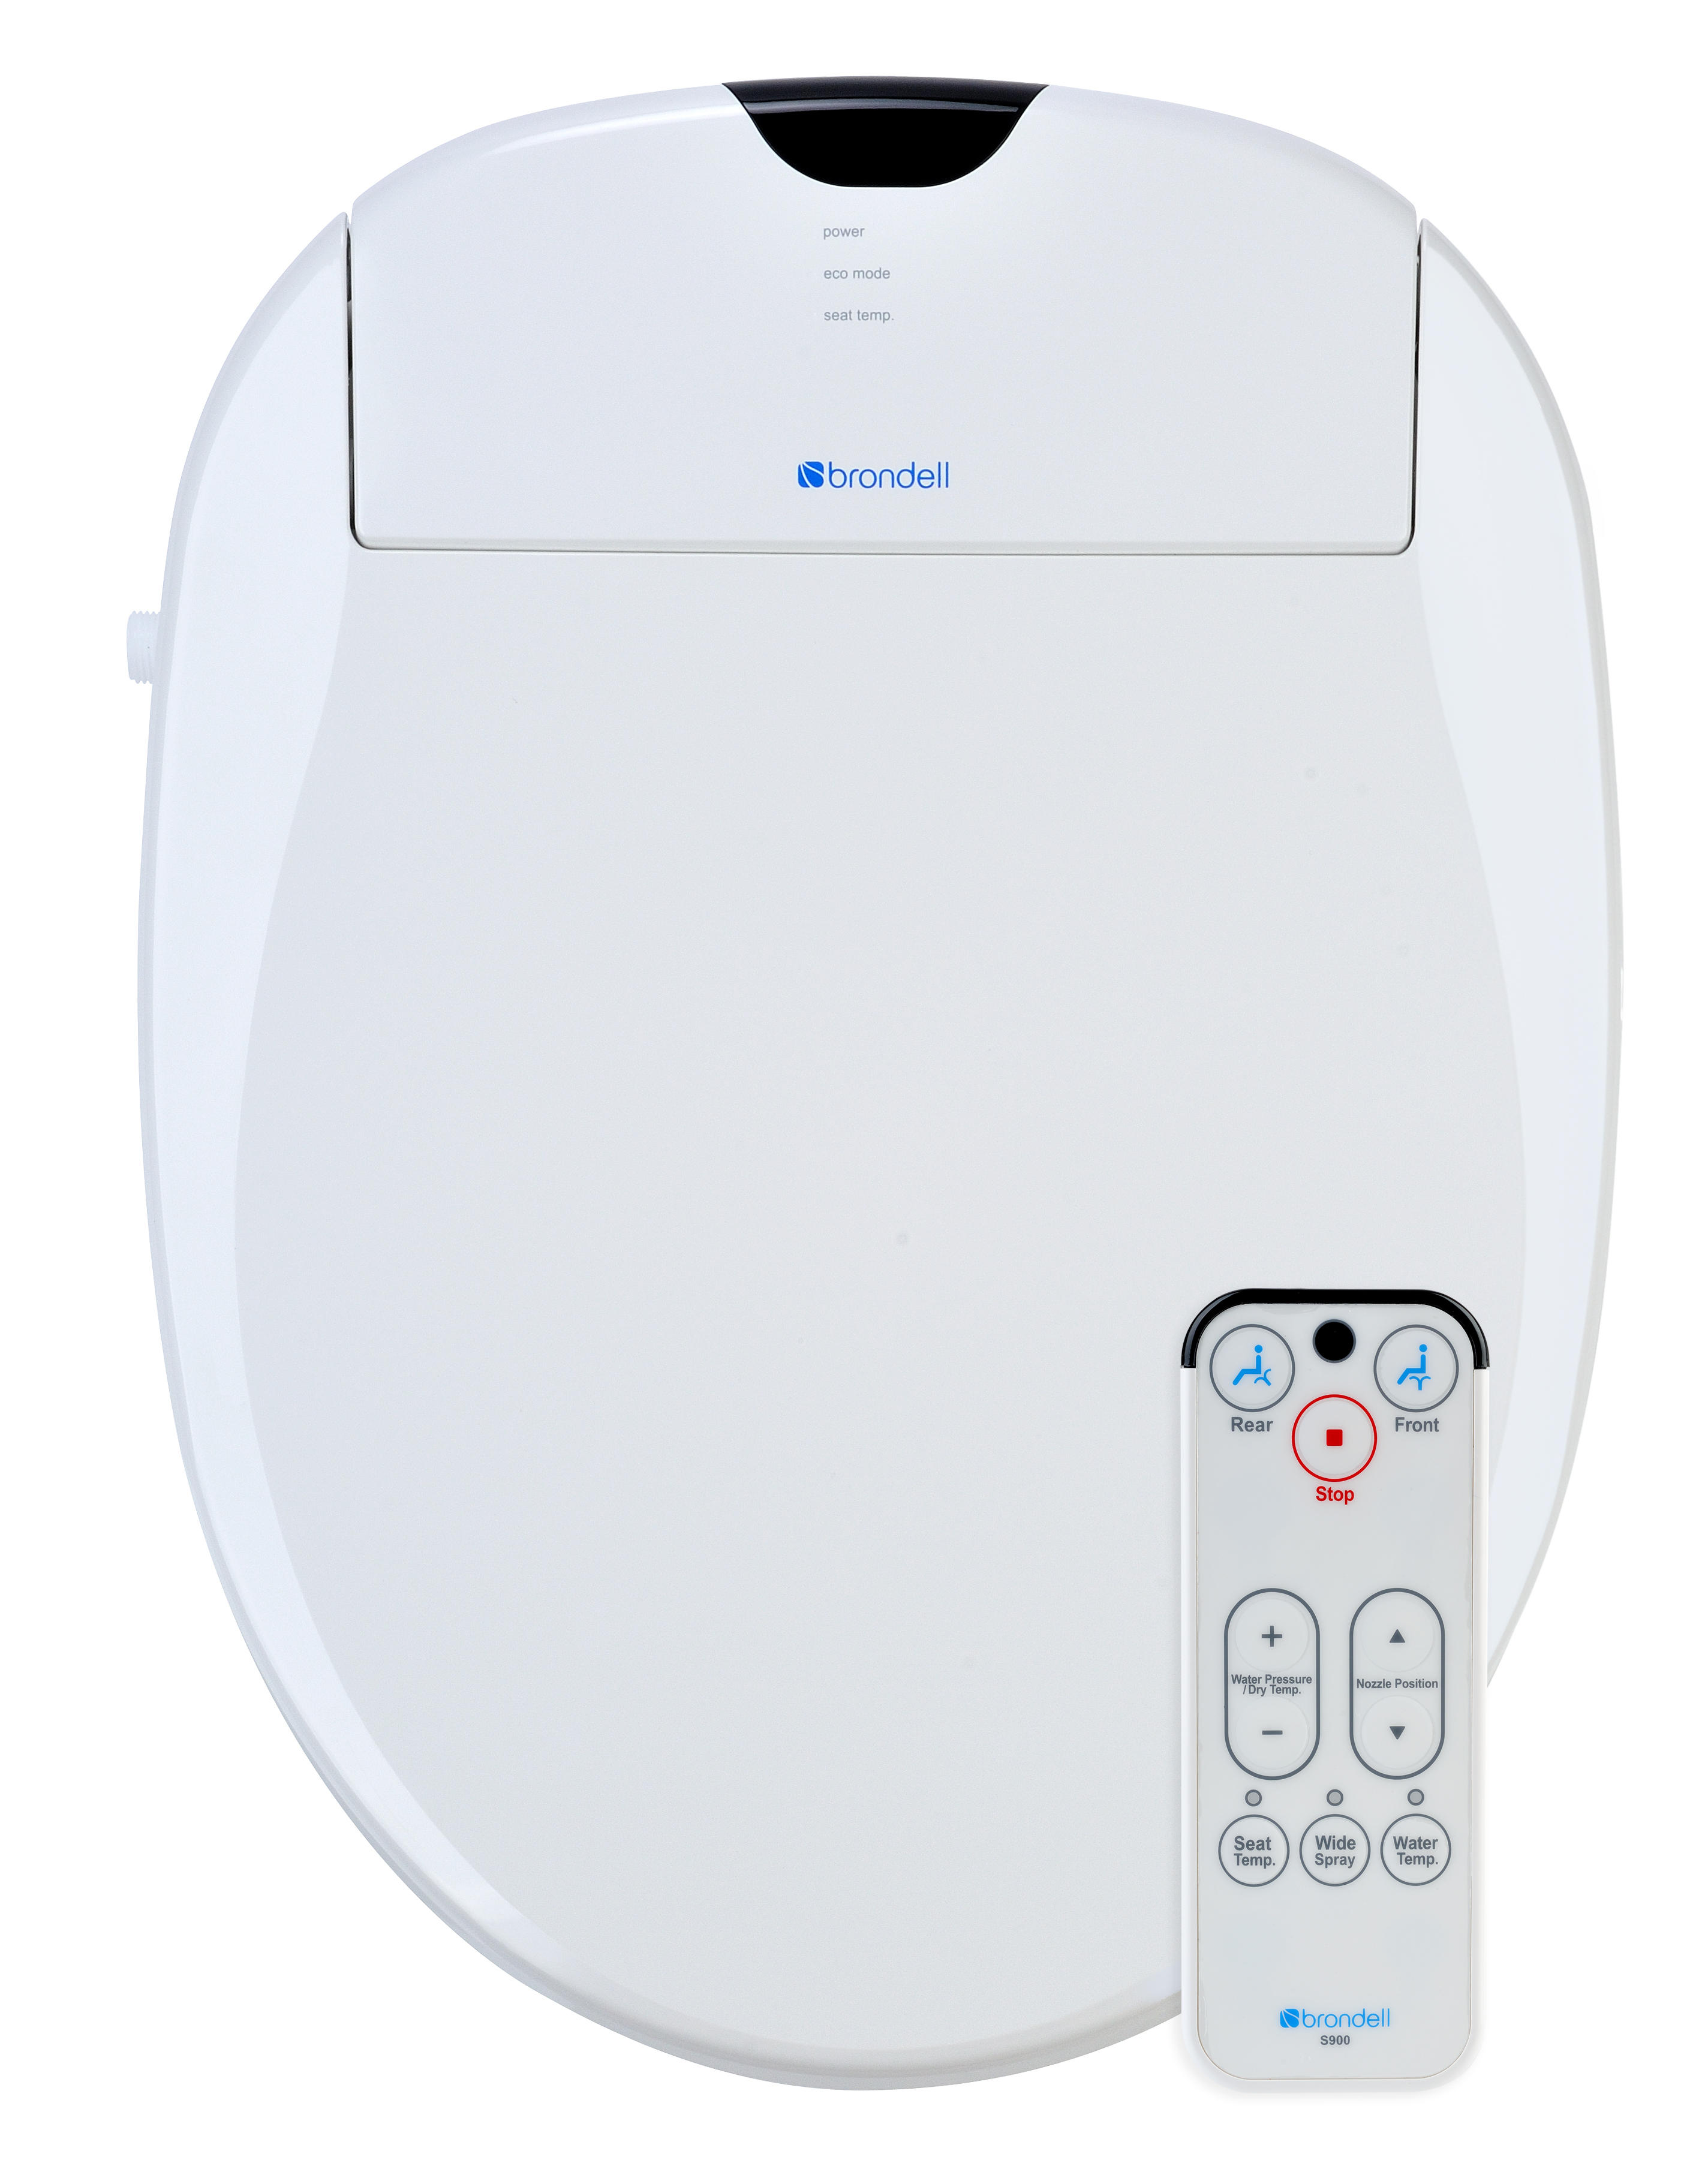 Sensational Brondell Swash 1200 Bidet Toilet Seat Pdpeps Interior Chair Design Pdpepsorg